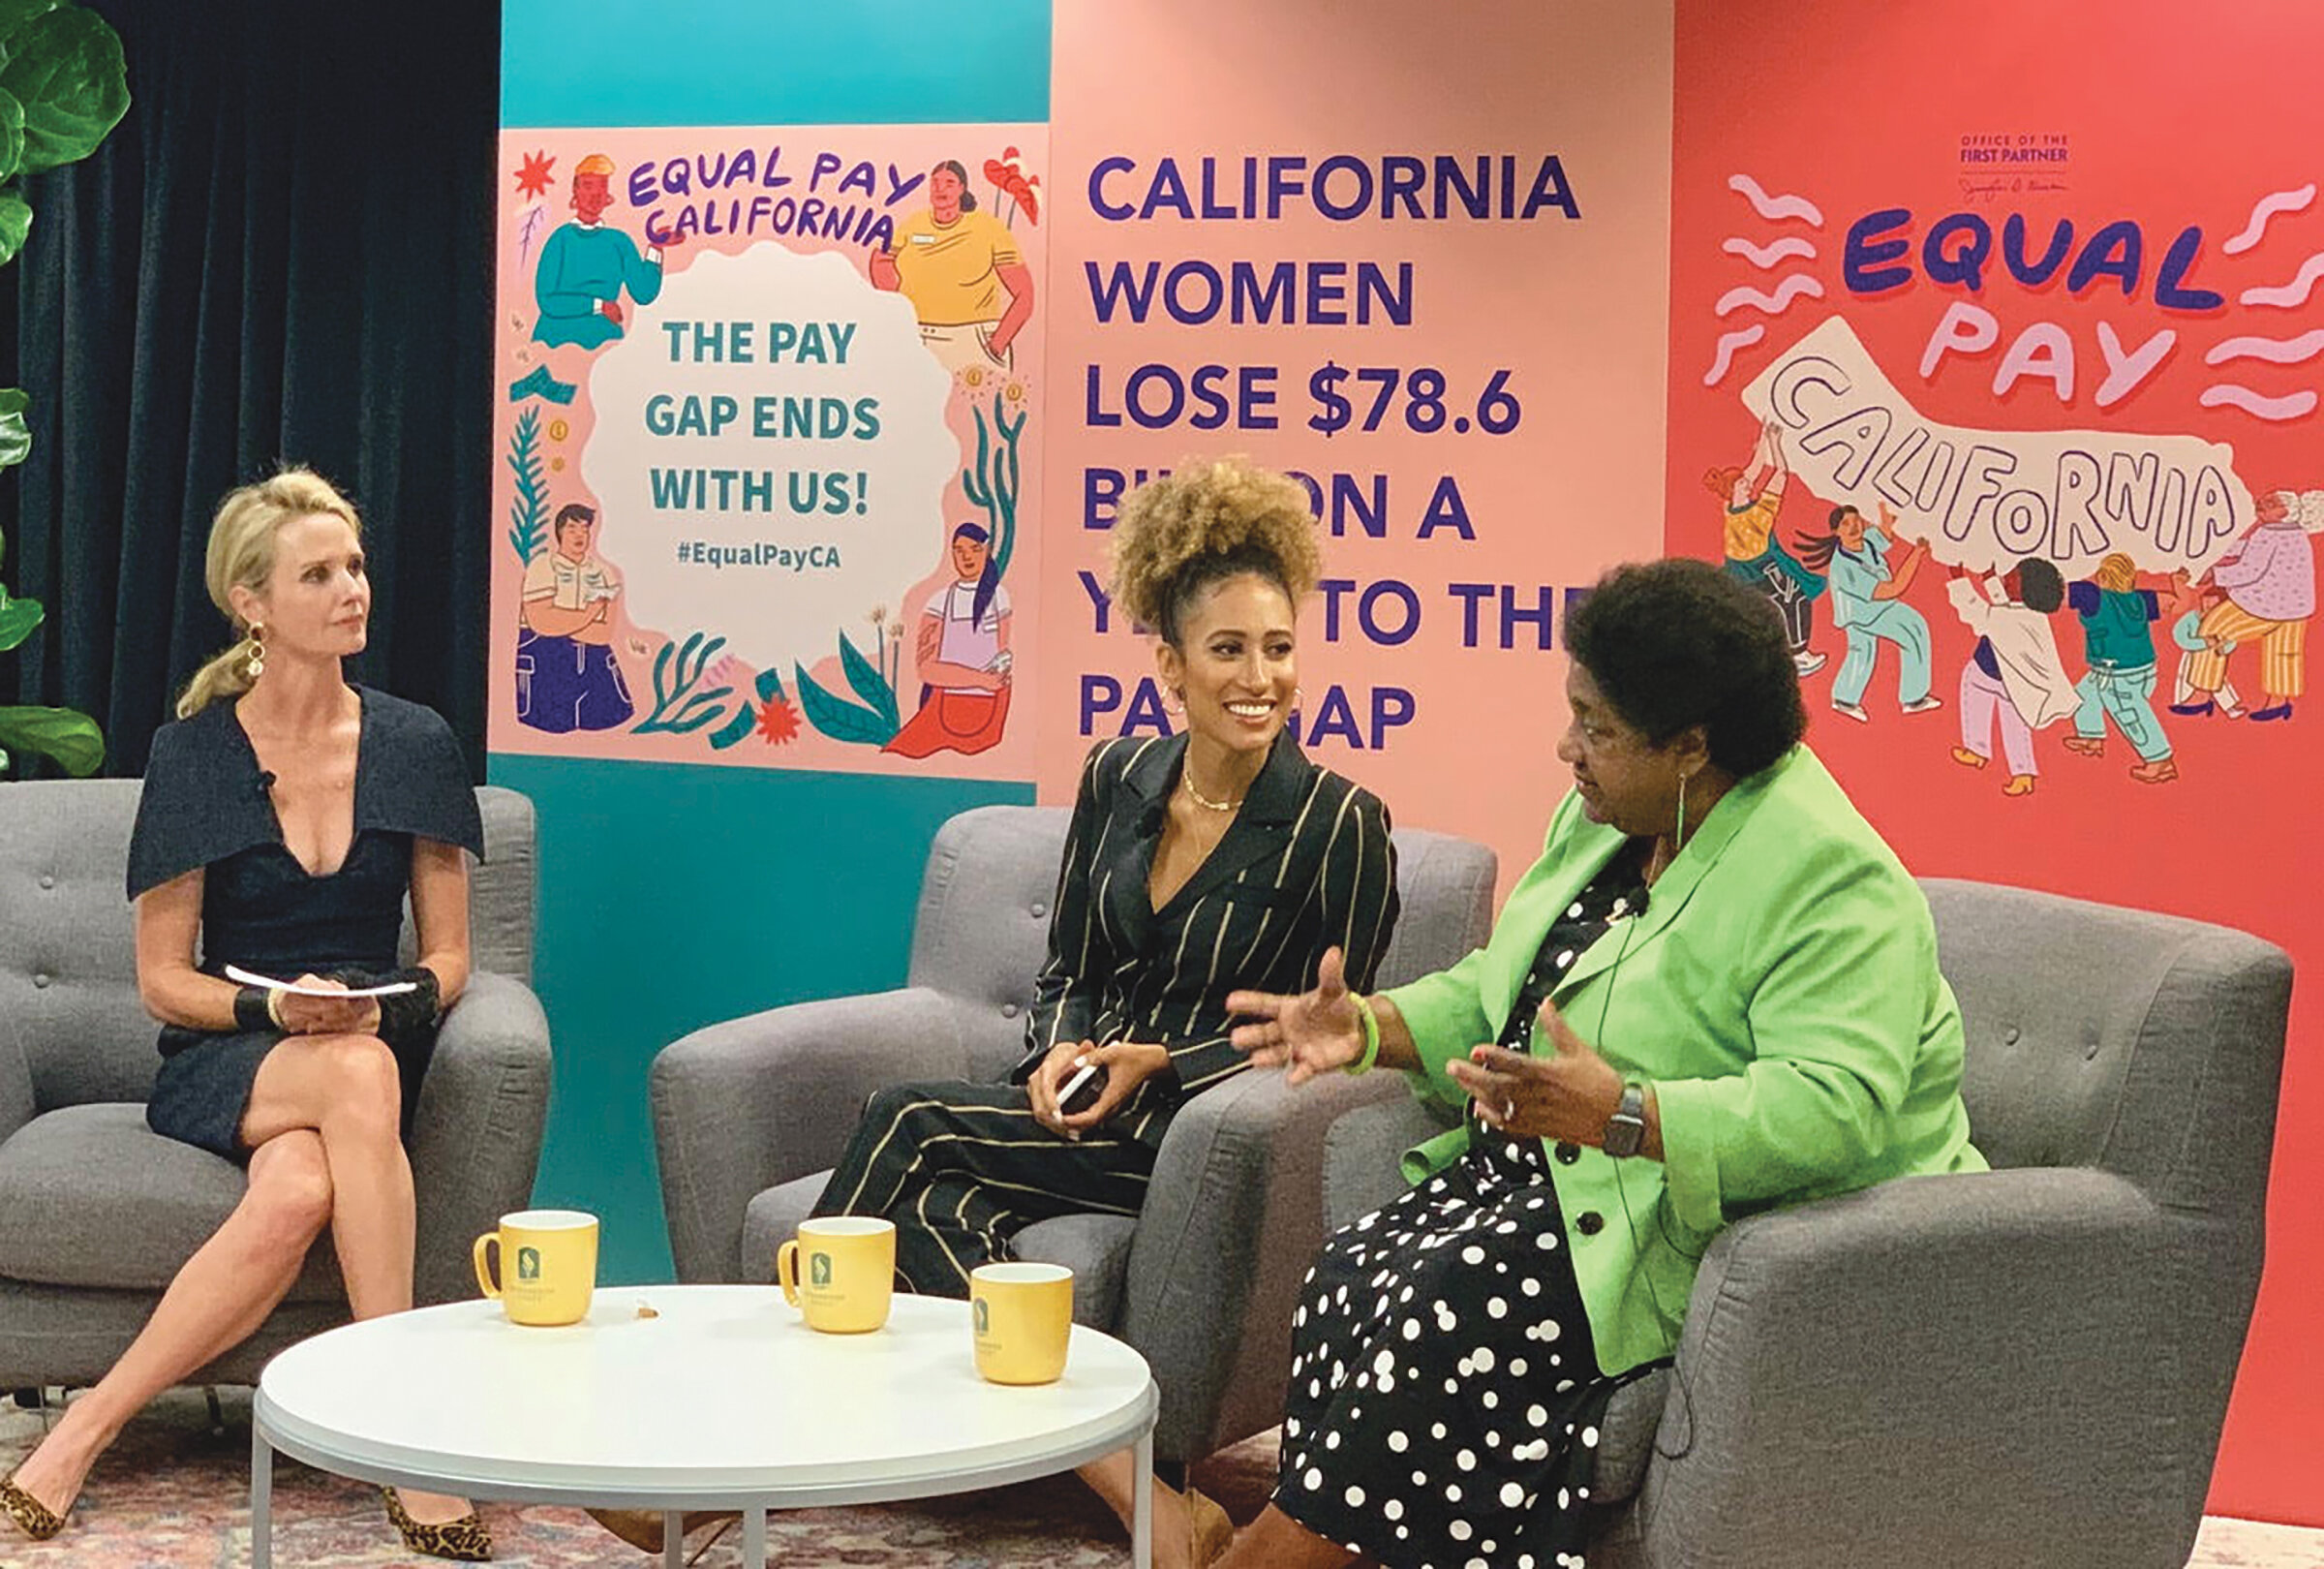 First Partner Jennifer Seibel Newsom moderates a panel with the youngest editor-and-chief of Teen Vogue Elaine Welteroth and Legislative Black Caucus Chair, Assemblymember Shirley Weber (D-San Diego) to discuss real life experiences affecting women and African American women on pay equity at Sacramento State University Aug 27, 2019. (CBM Photo)